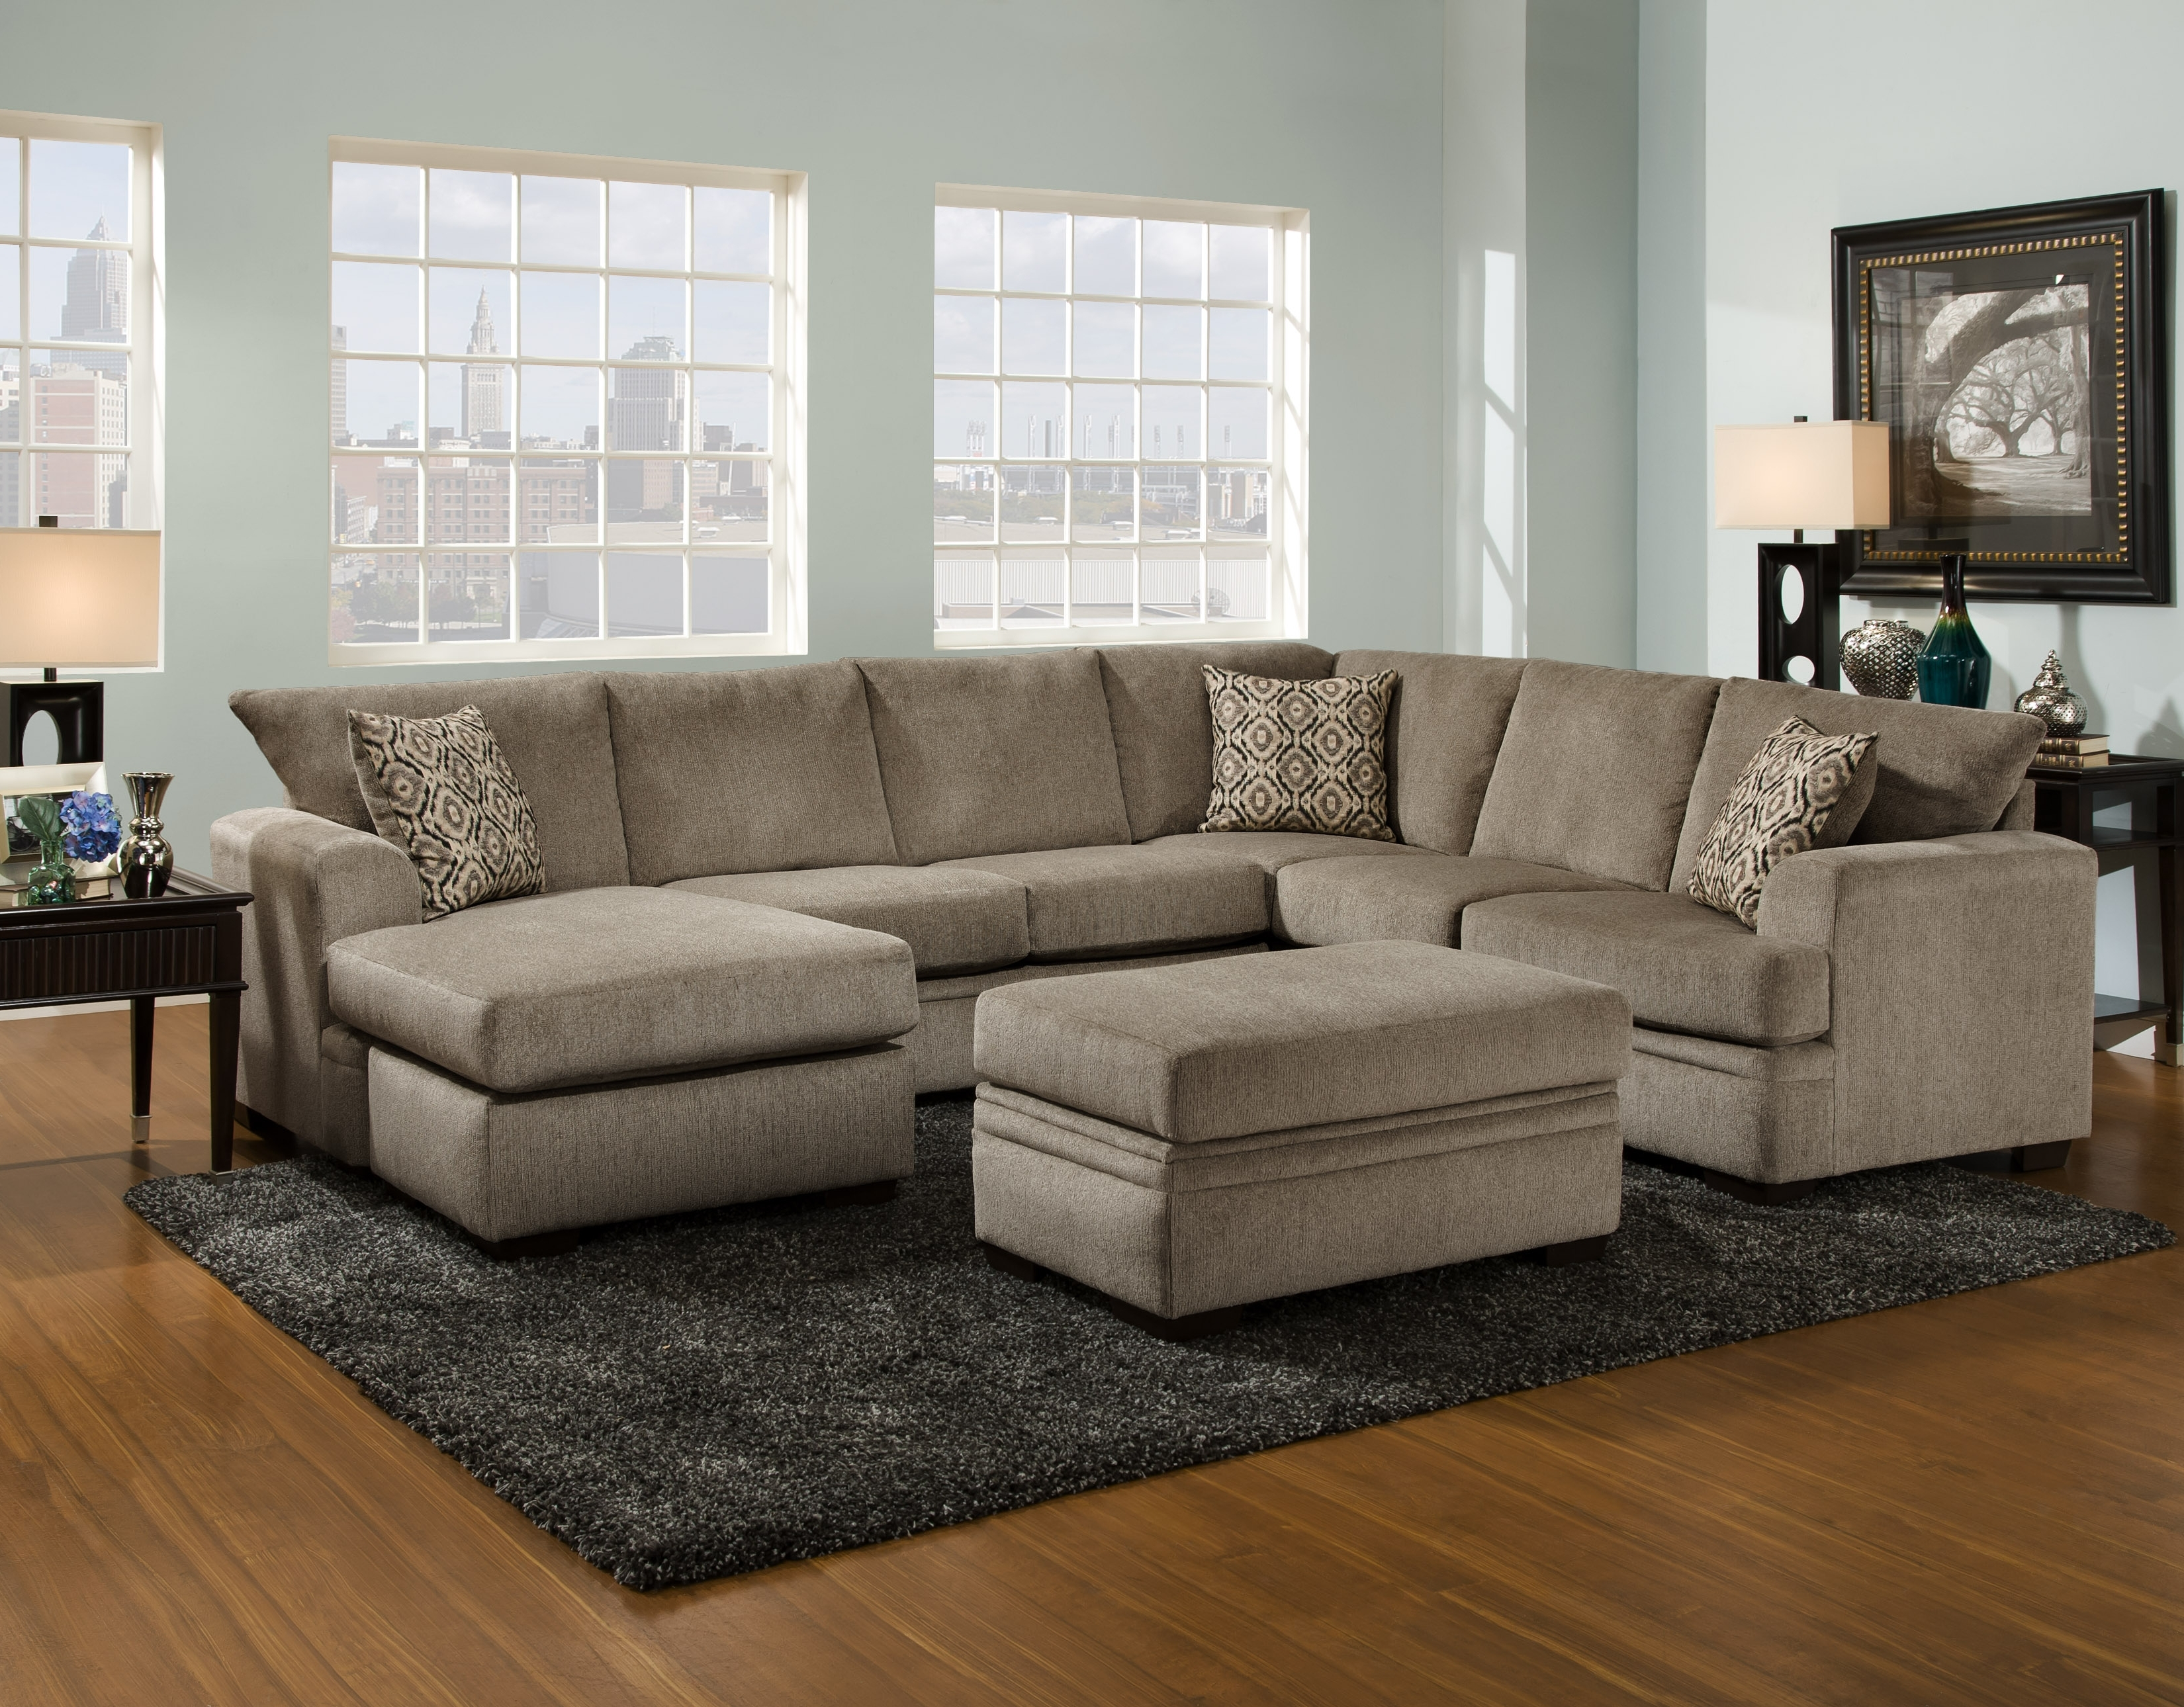 Vaughan Sectional Sofas Pertaining To Most Current Living Room Furniture – Vaughn's Home Furnishings (View 9 of 20)